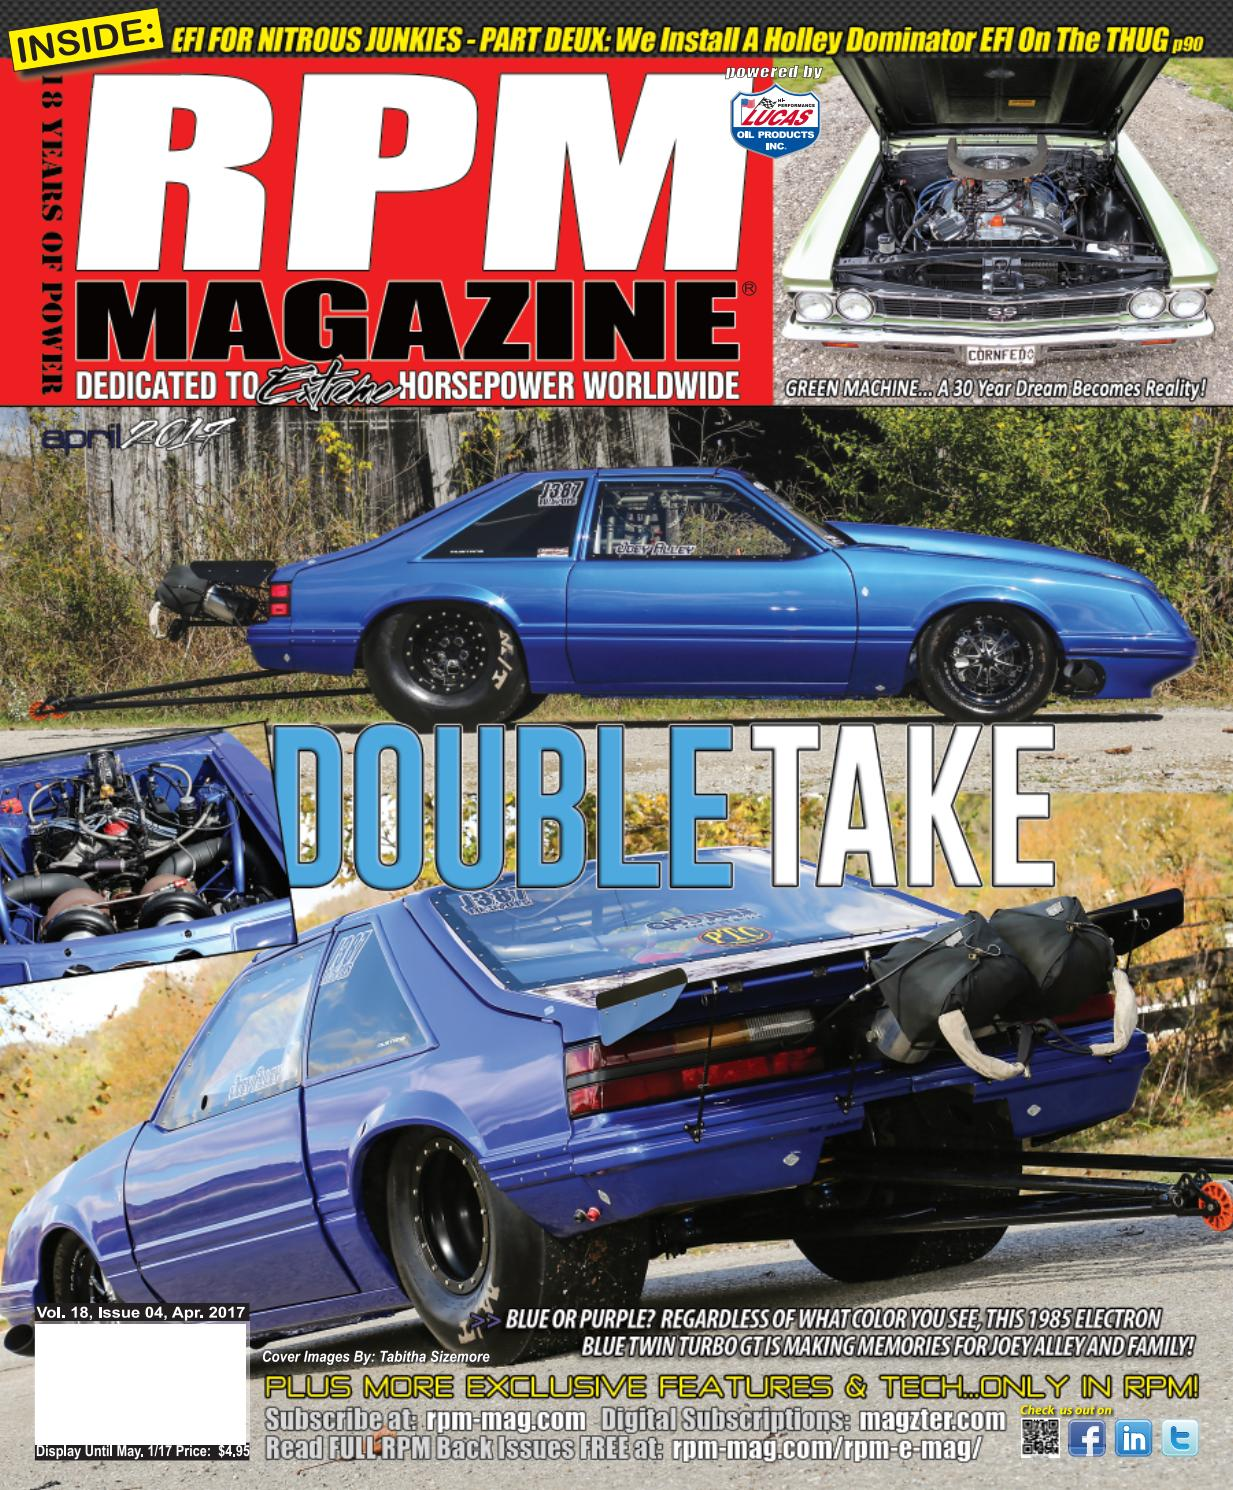 RPM Magazine April 2017 by RPM Magazine - issuu